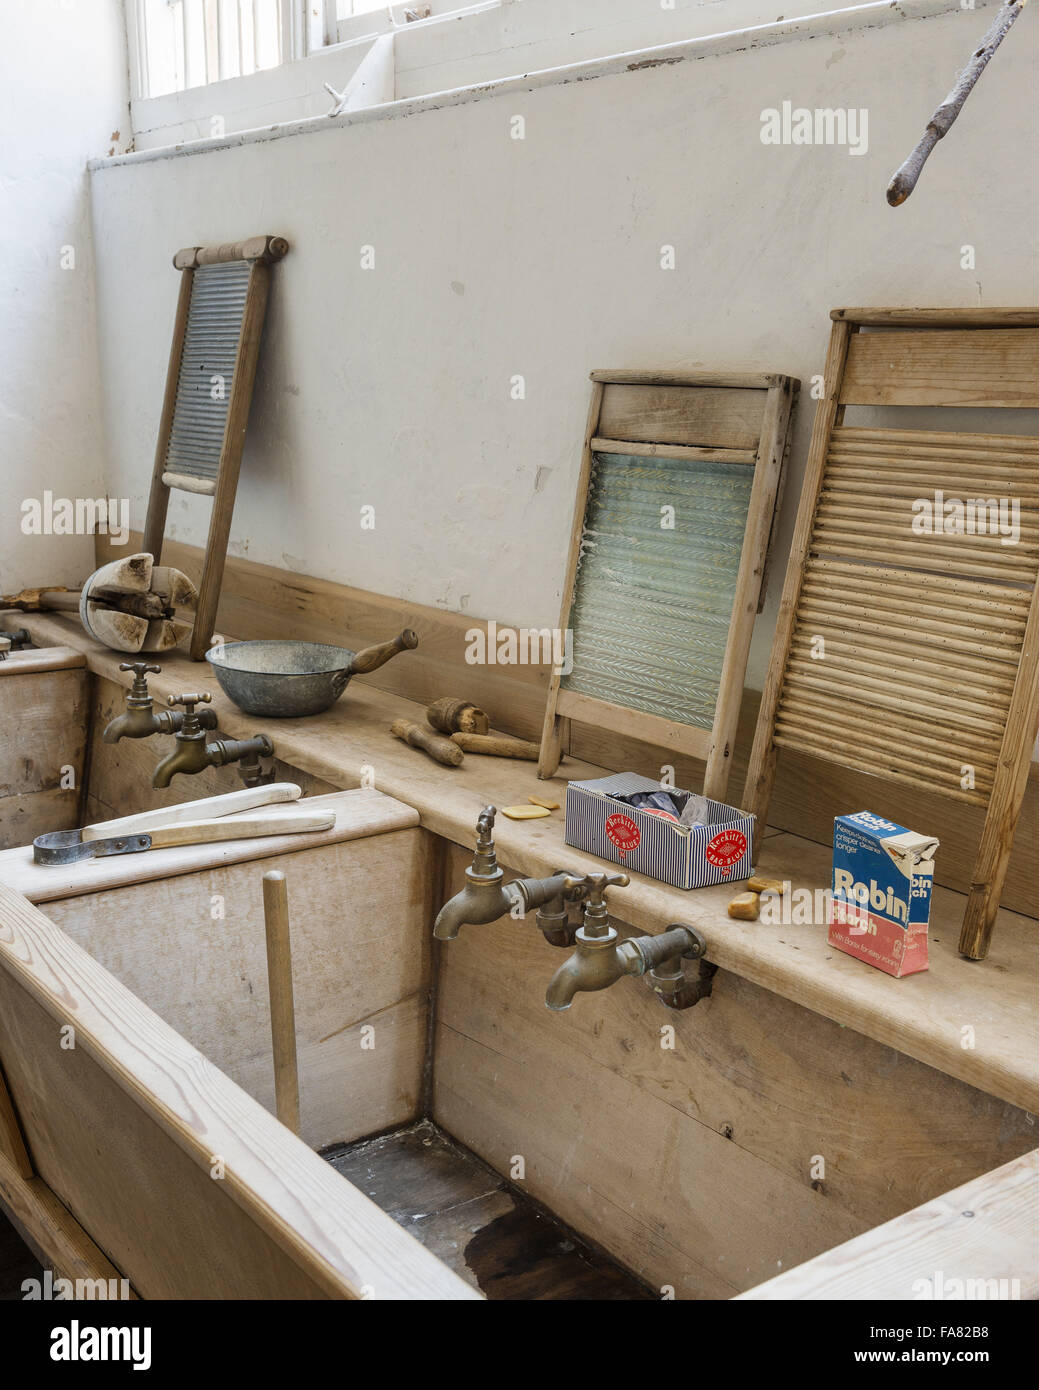 Sinks and washboards in the Laundry at Killerton, Devon. Until it closed in 1940, Killerton Laundry employed three - Stock Image